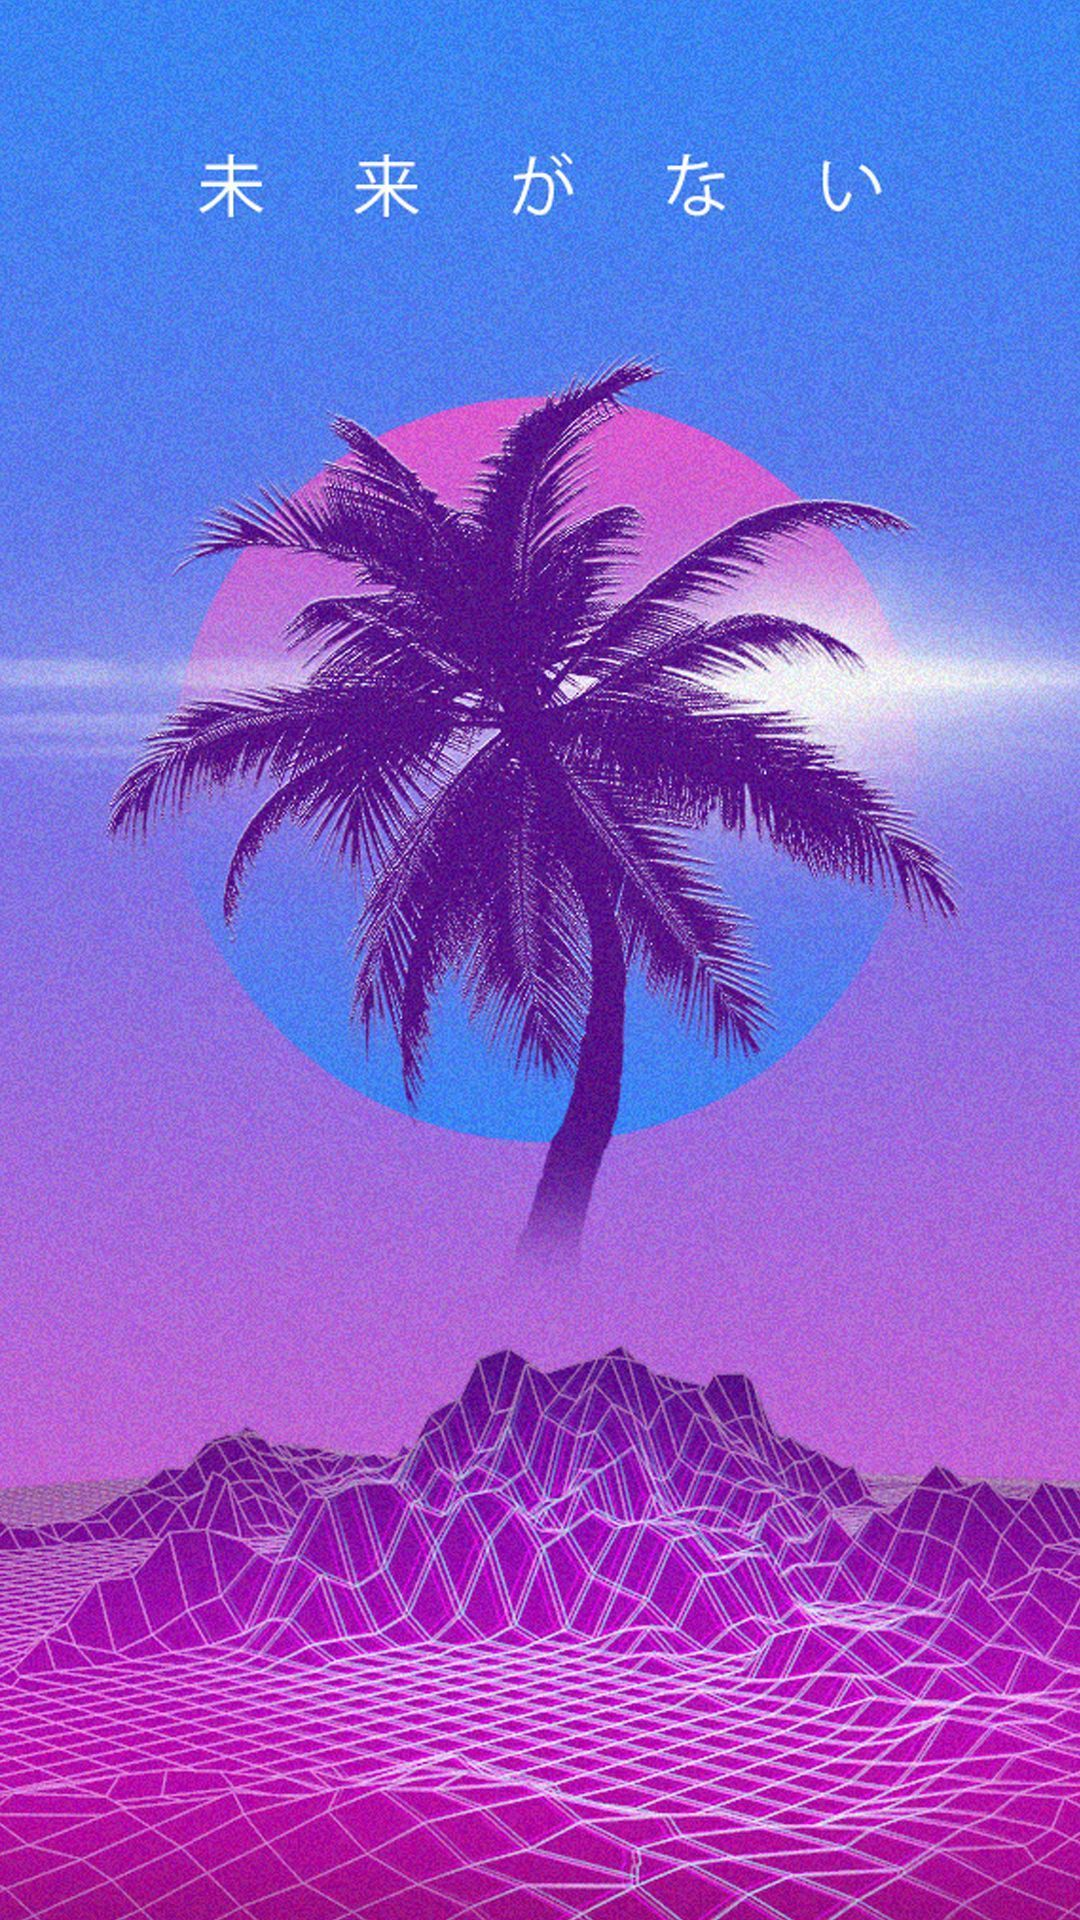 45 Neon Aesthetic Android Iphone Desktop Hd Backgrounds Wallpapers 1080p 4k 1080x1920 2021